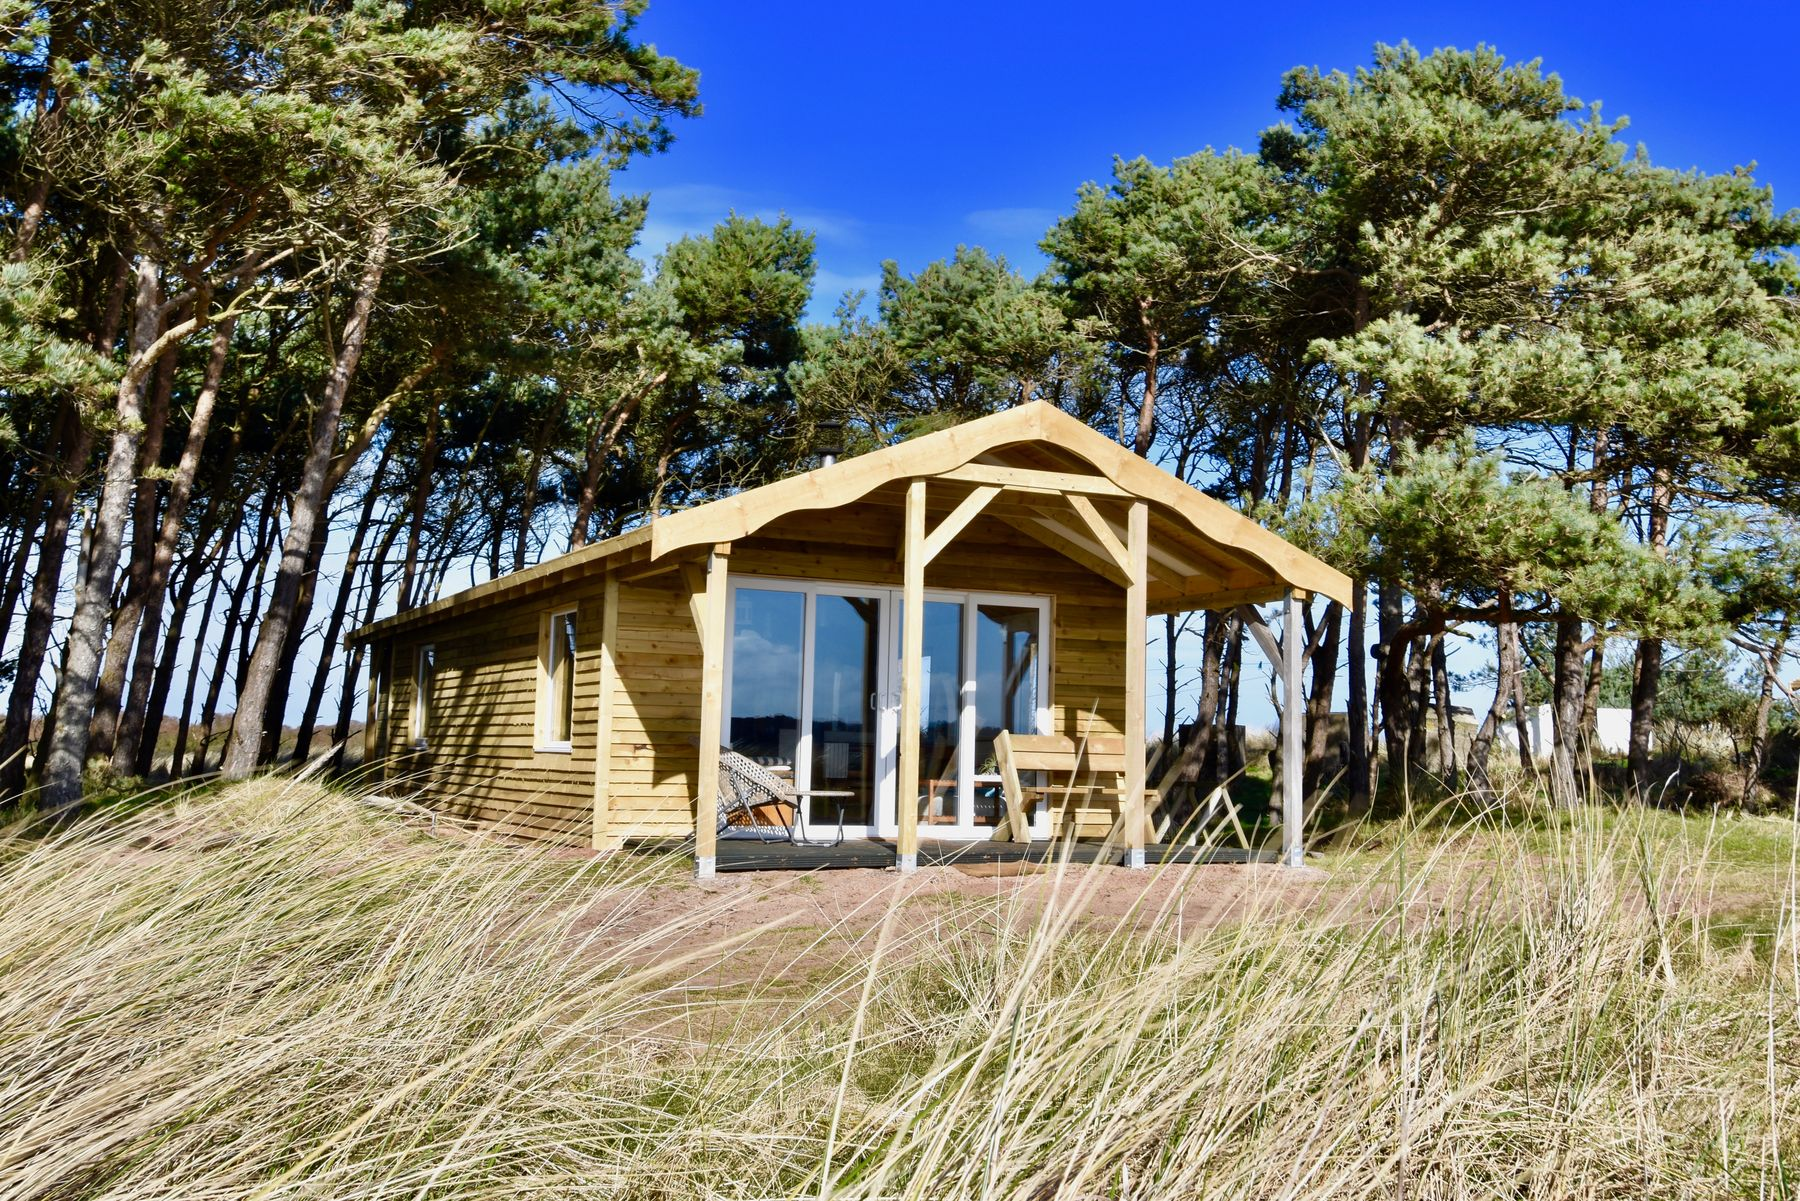 One of the best beach hotels for glamping in Scotland